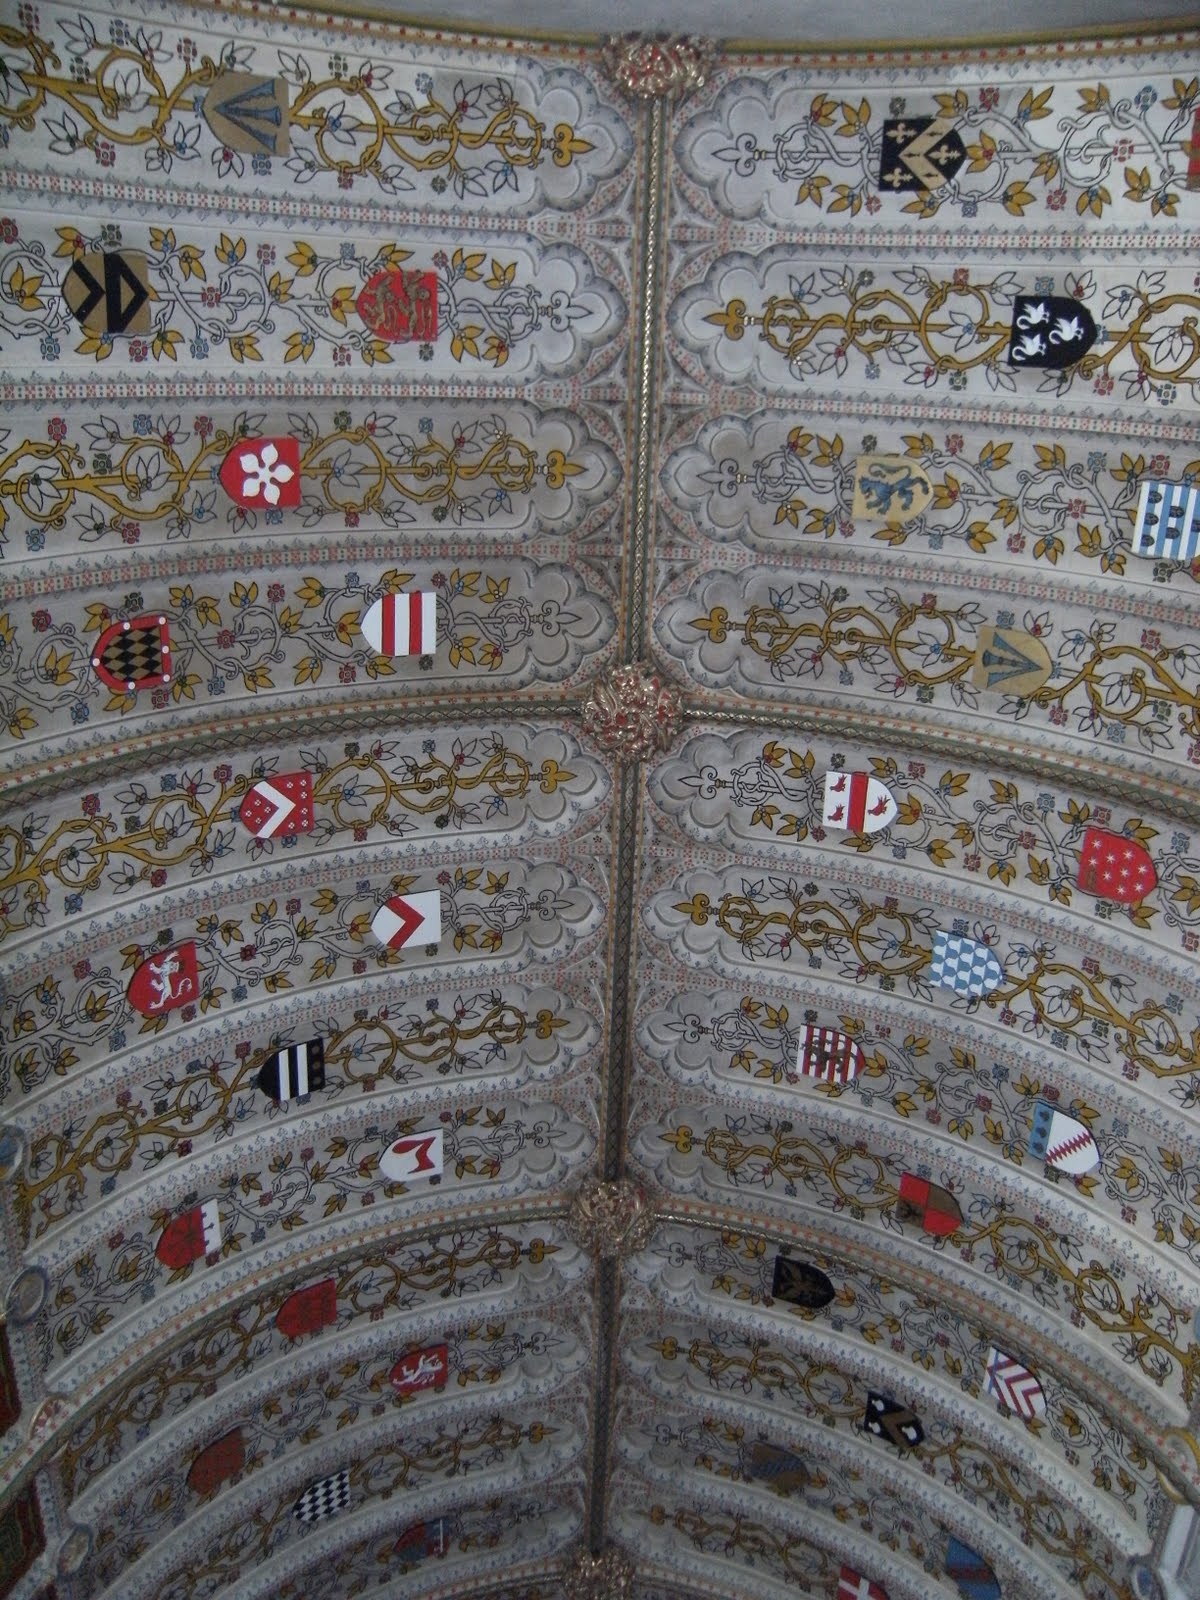 1005300140 Sidney Chapel ceiling, St John the Baptist Church, Penshurst